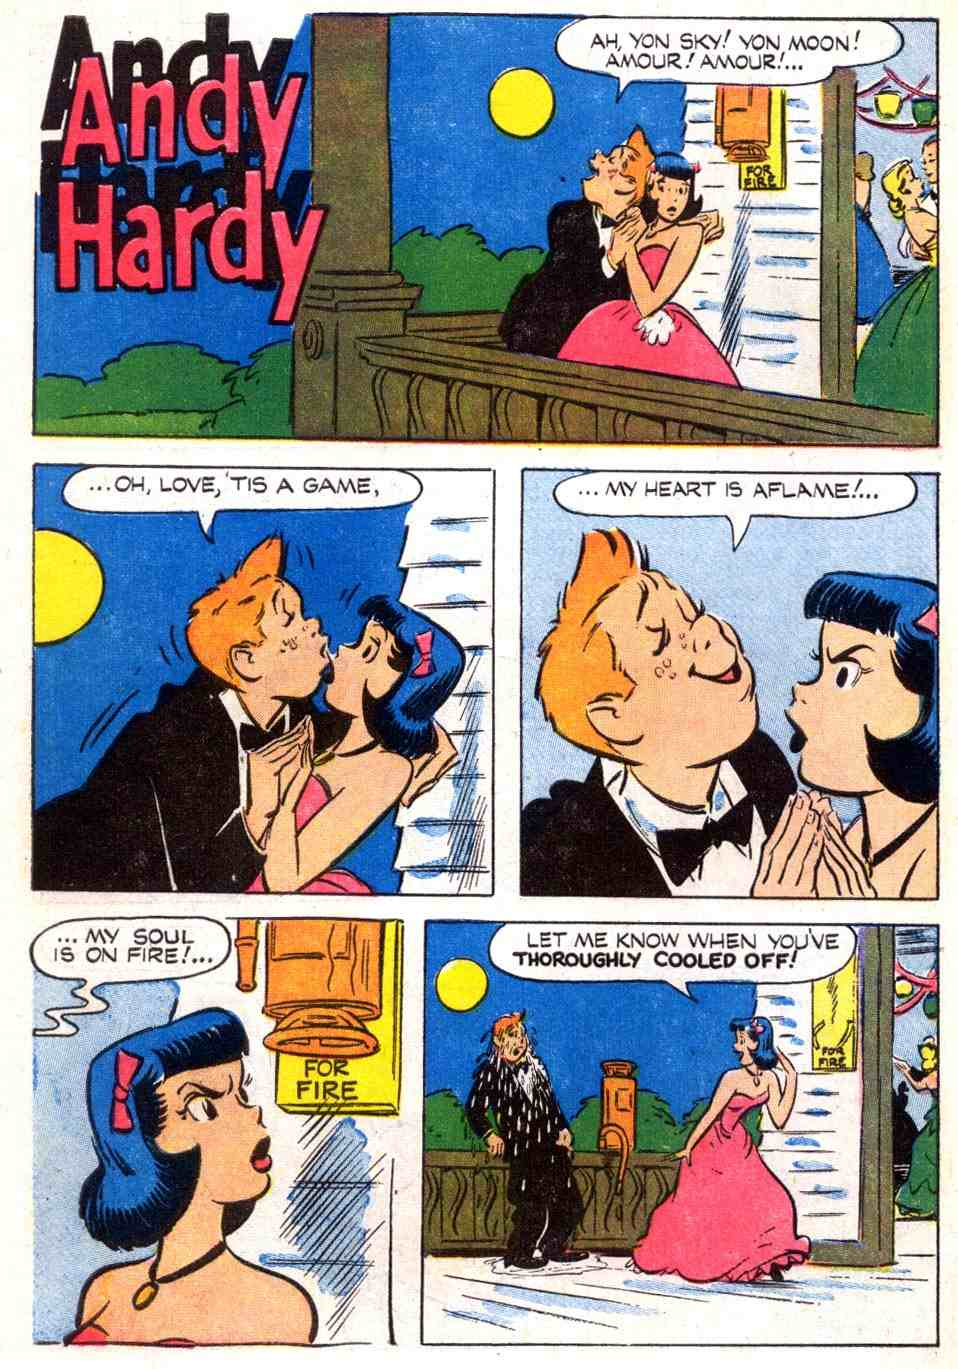 Andy-Hardy-Comic-Strips (34)